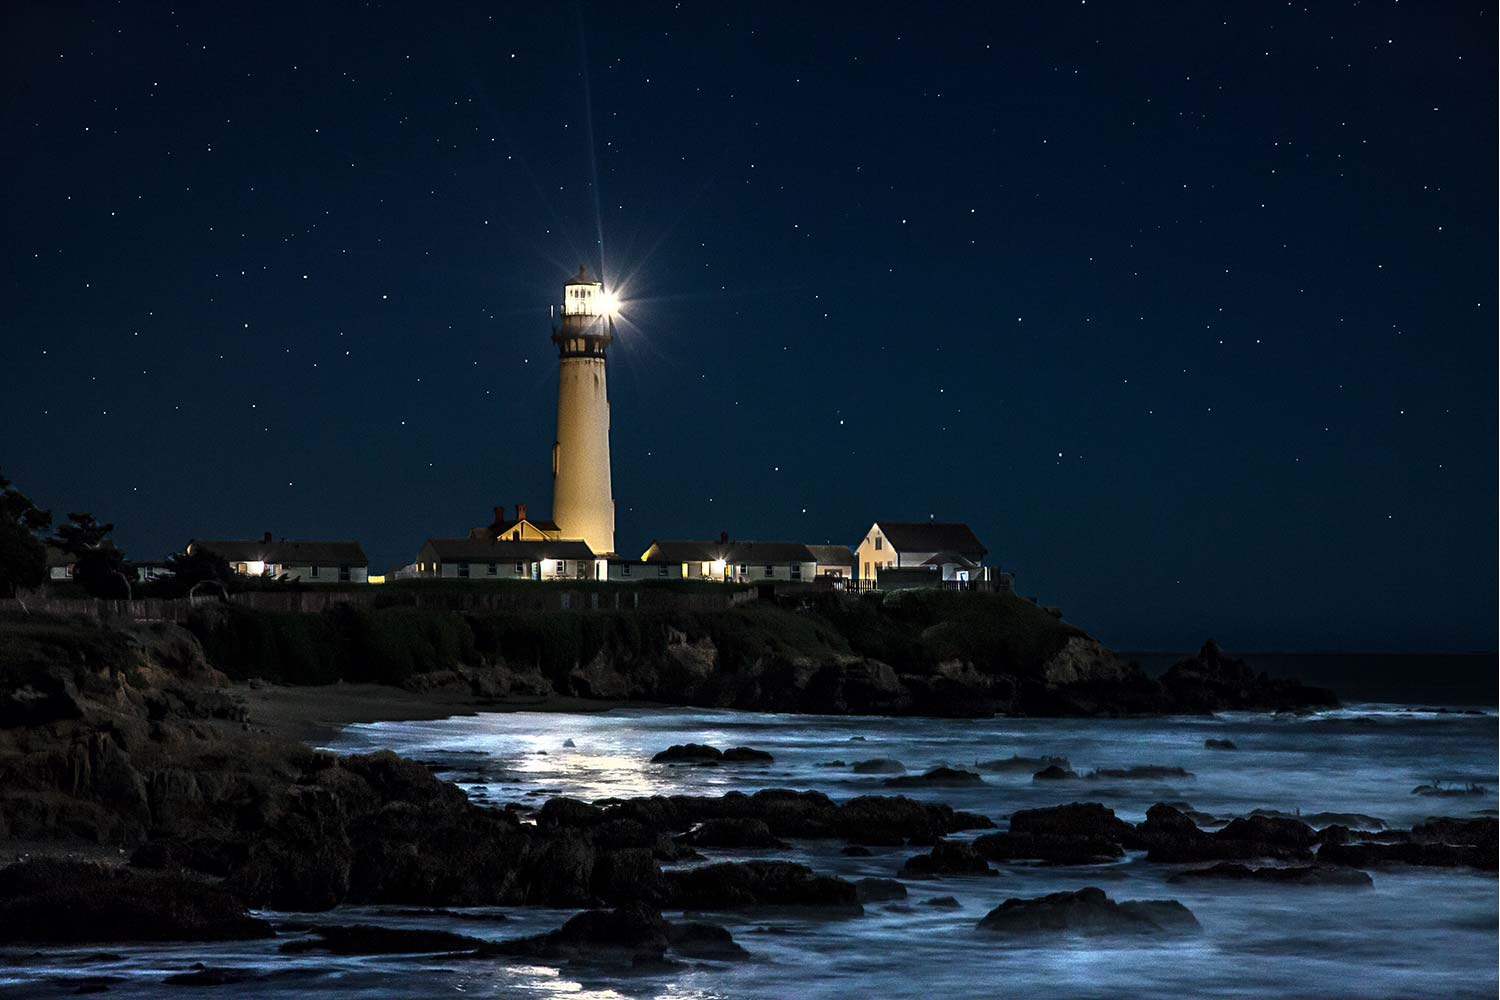 Lighthouse at nigh